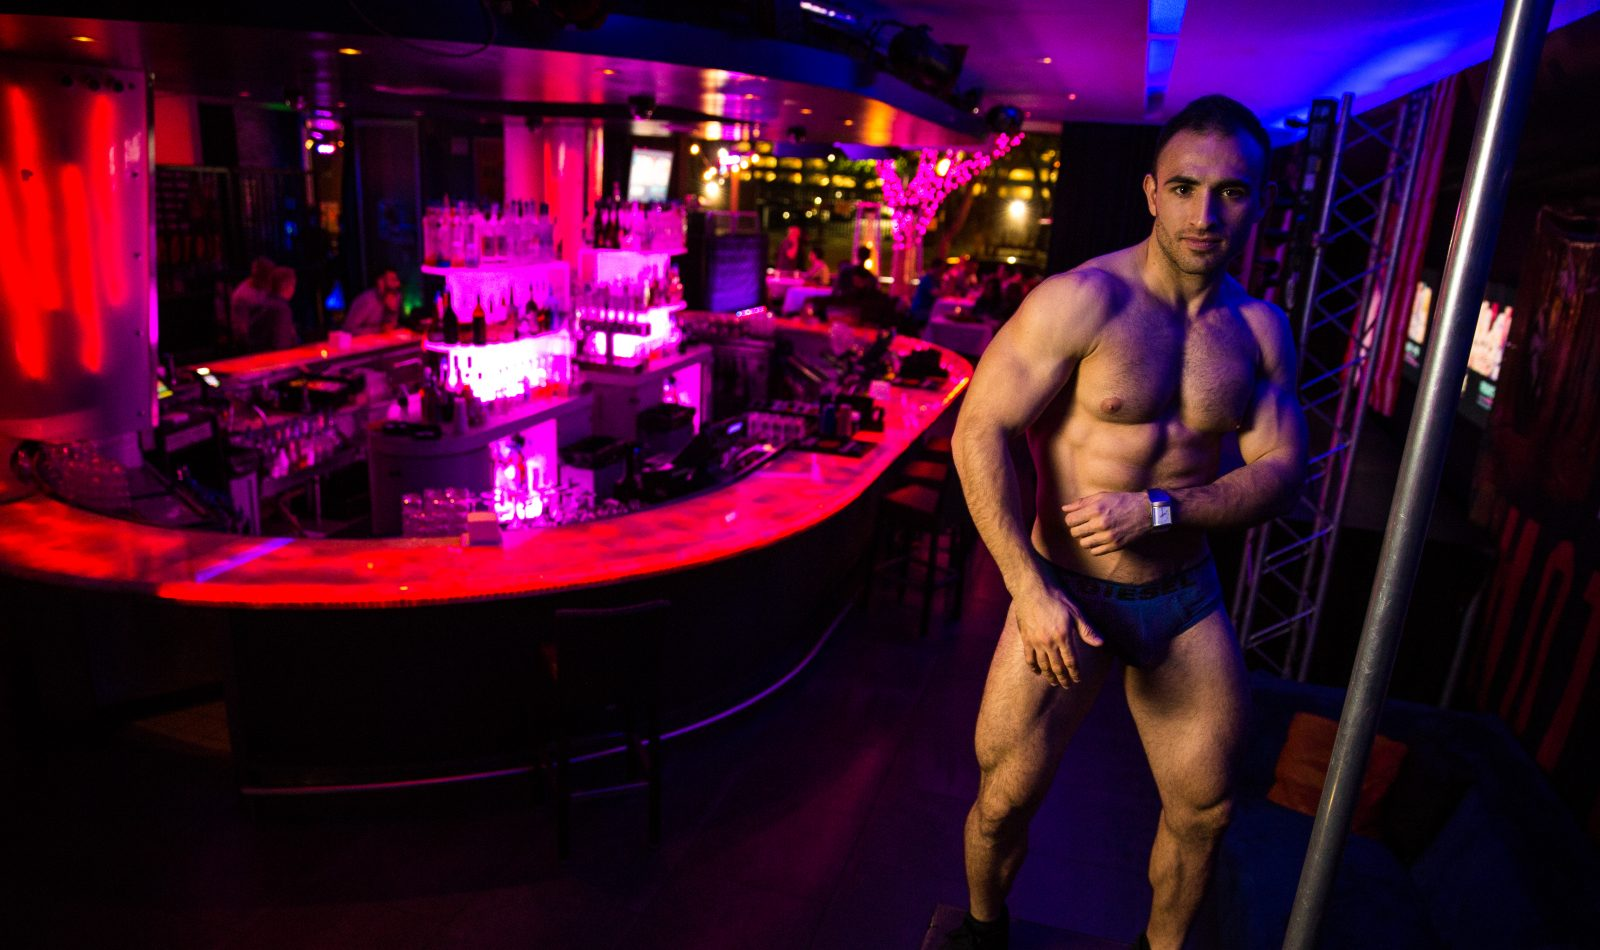 Micky's Go-Go Dancer Of The Month: April 2017